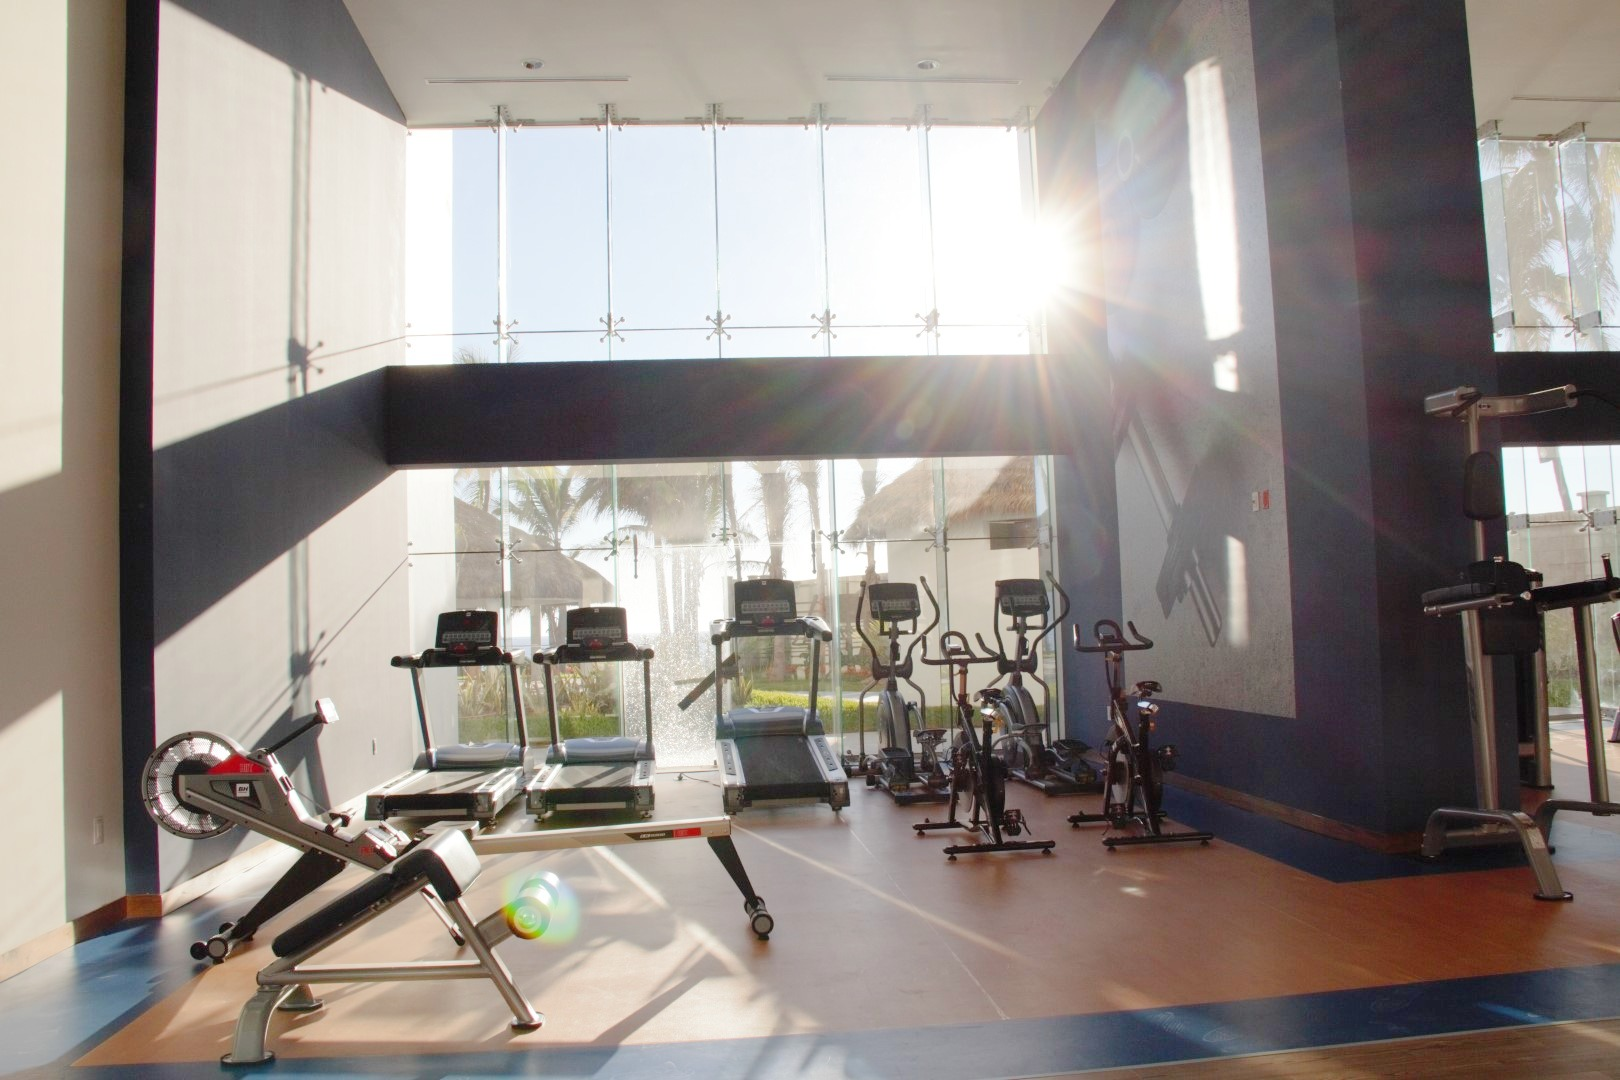 Cardio area in gym.